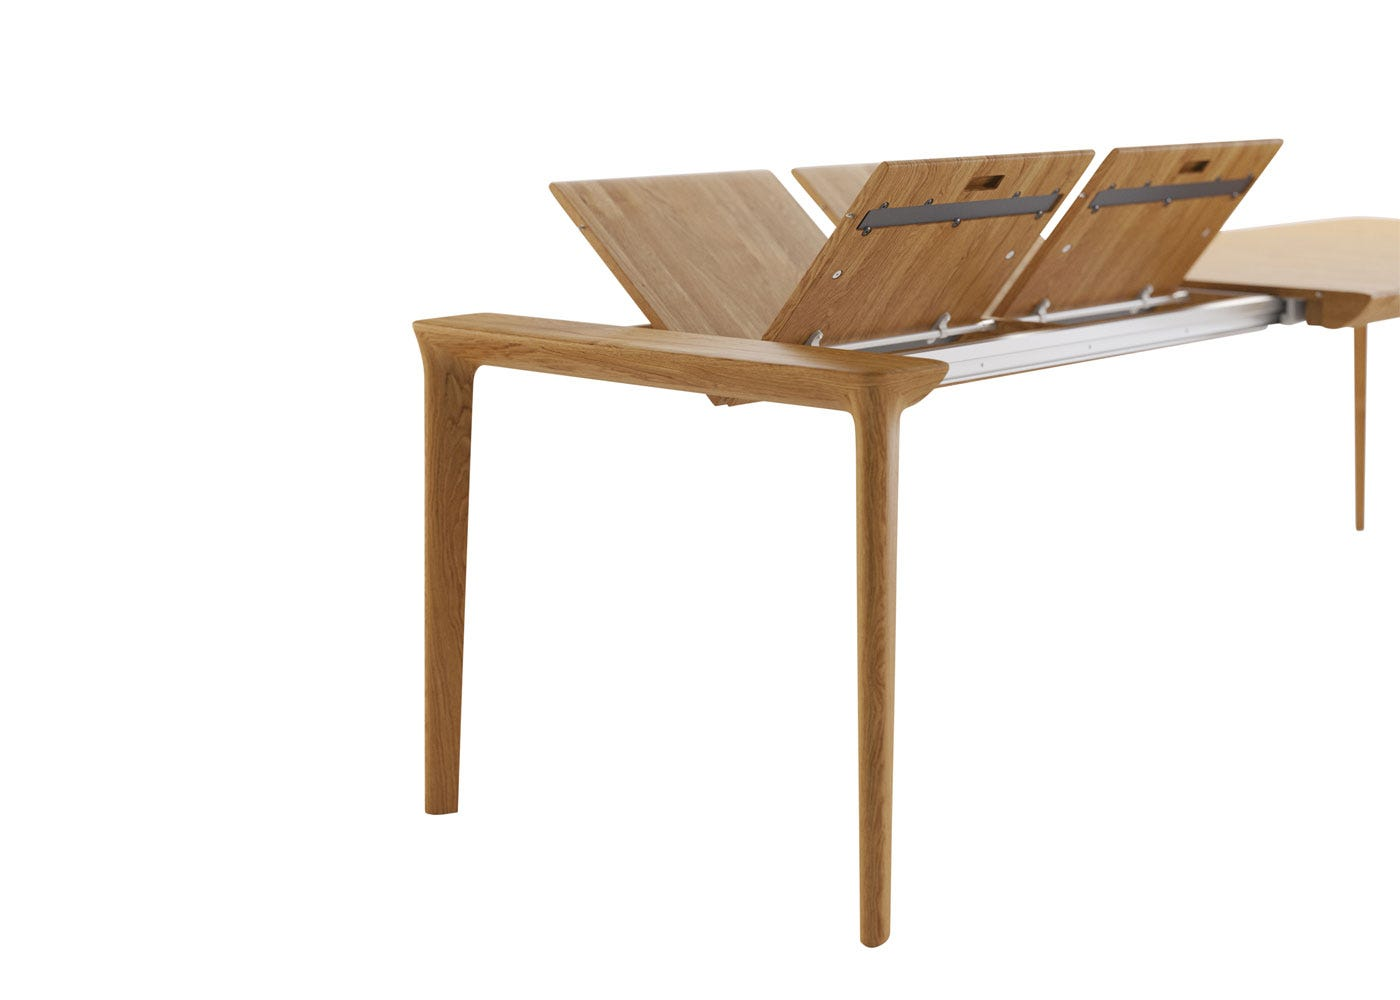 As Shown: Tara dining table in oak with leaves.